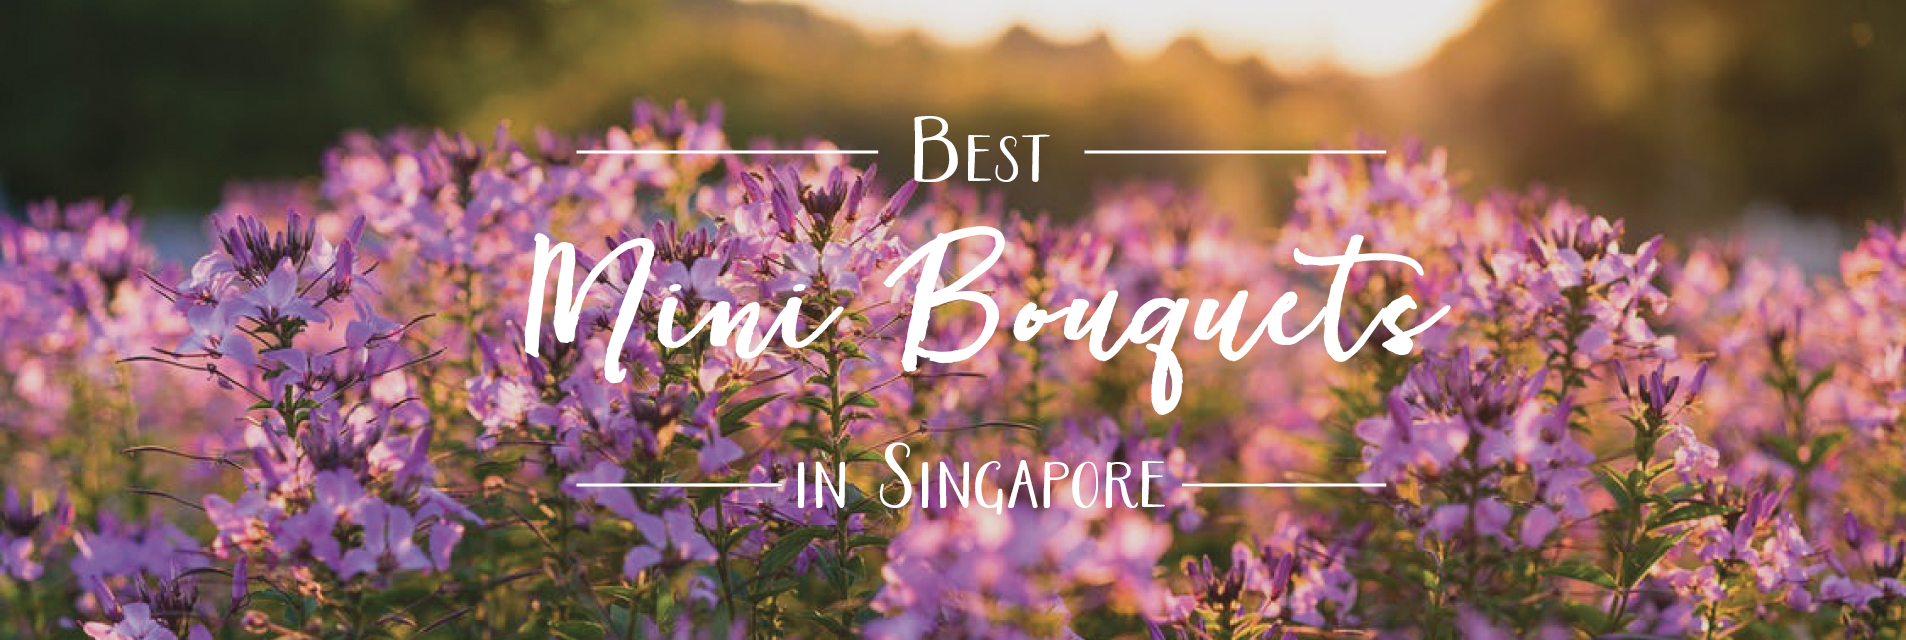 HSingapore's Best Mini Bouquets